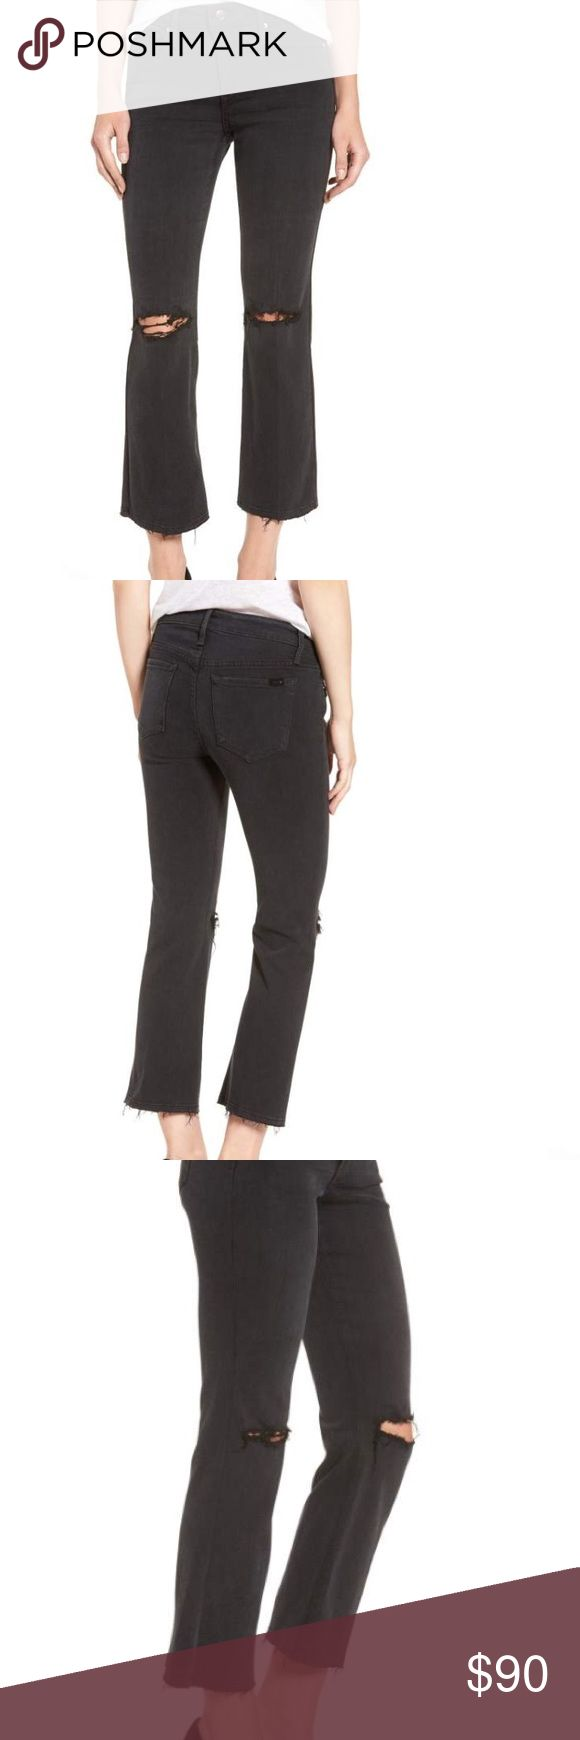 """NWT Joes Emilie Jeans, frayed bottom + ripped knee Frayed, ripped knees and ragged hems define the edgy character of trend-right cropped flare jeans cast in a cool faded-black wash. 26 1/2"""" inseam; 17"""" leg opening; 9"""" front rise; 13"""" back rise (size 29). Zip fly with button closure. Five-pocket style. Dark dye may transfer to lighter materials. 56% rayon, 25% cotton, 18% polyester, 1% spandex. Dry clean or machine wash cold, line dry. Joe's Jeans Jeans Ankle & Cropped"""